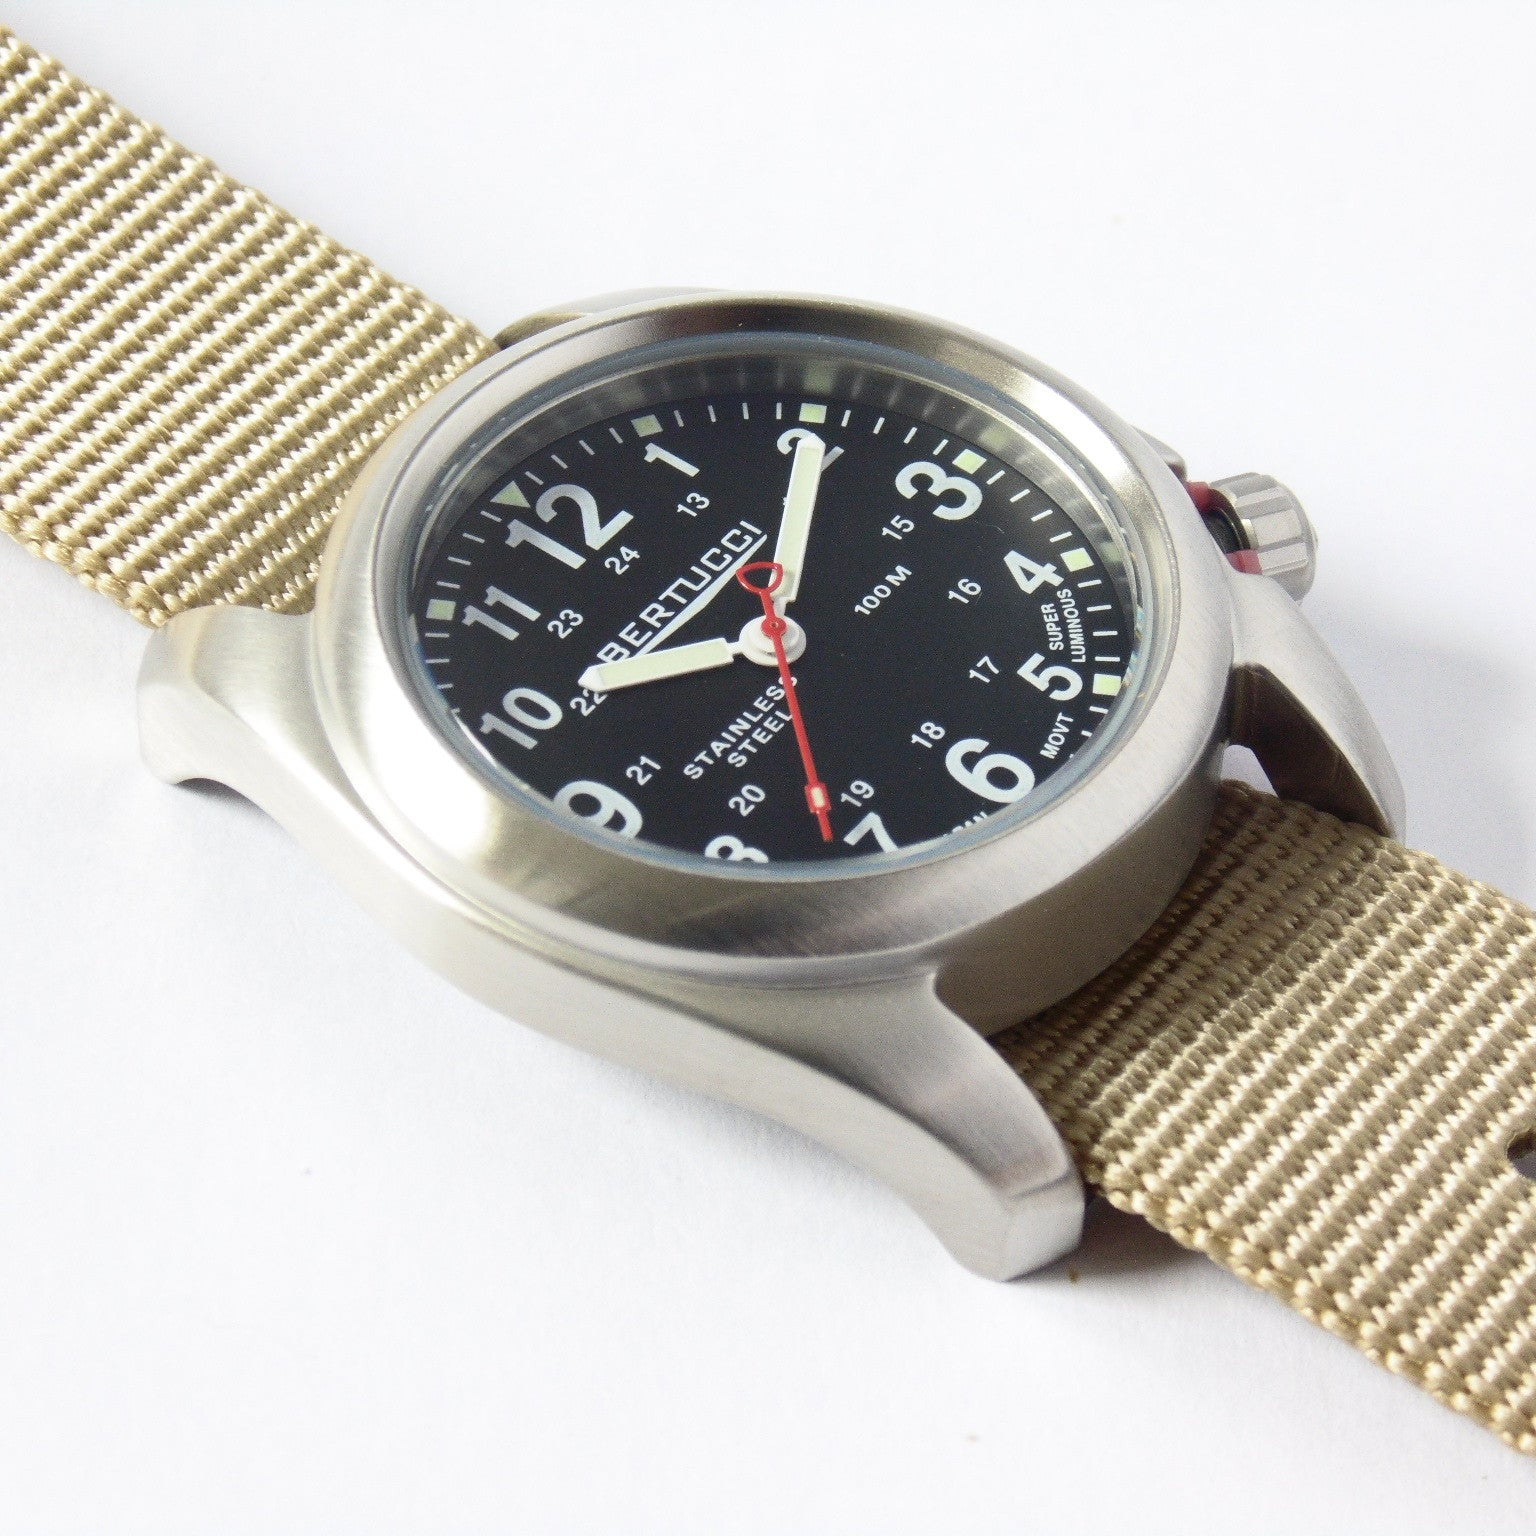 Bertucci 11052 A-2S Field Watch (Defender Khaki Strap) - Watchfinder General - UK suppliers of Russian Vostok Parnis Watches MWC G10  - 2